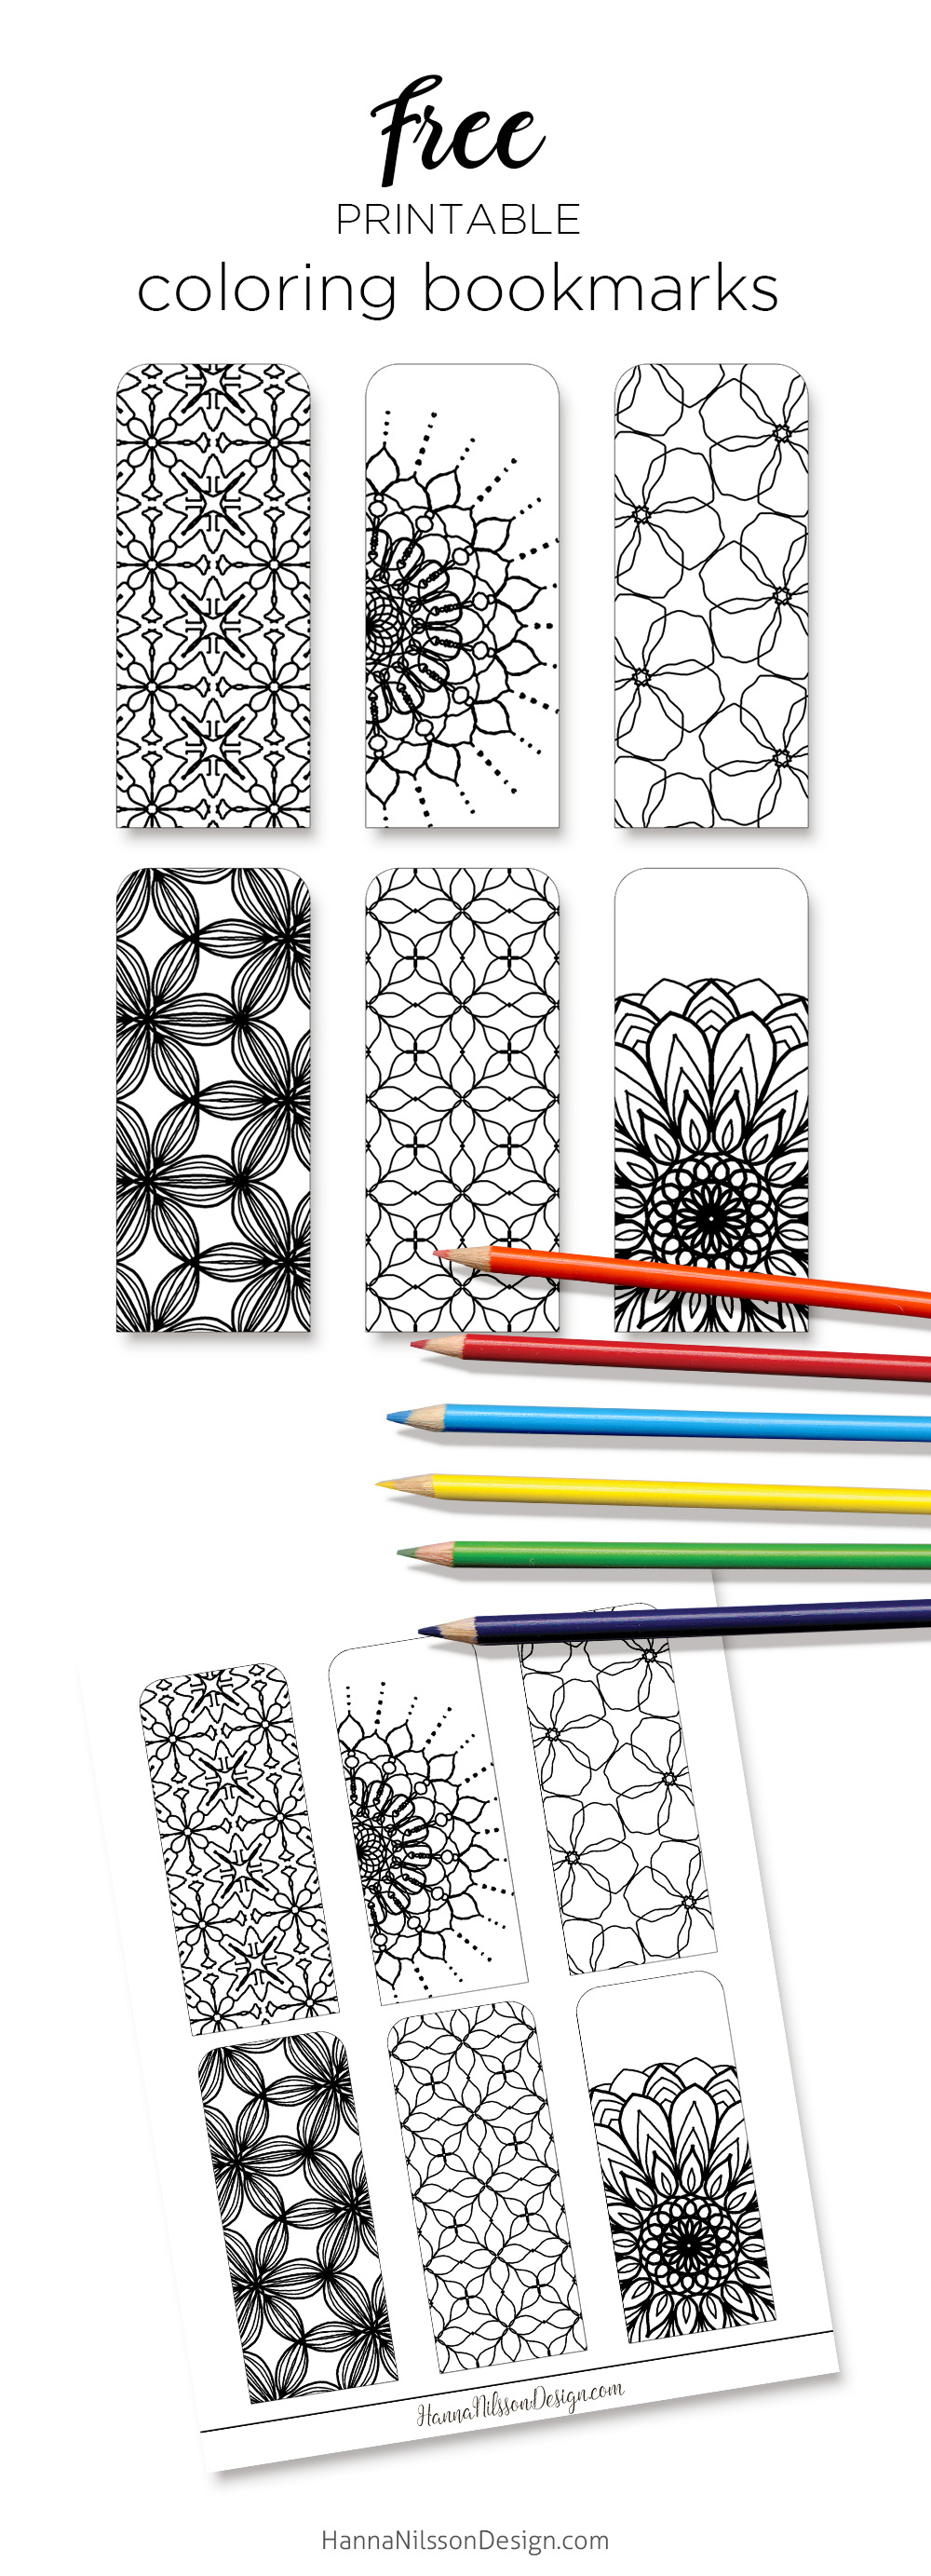 image relating to Printable Bookmarks to Color identified as Coloring bookmarks print, colour and browse Hanna Nilsson